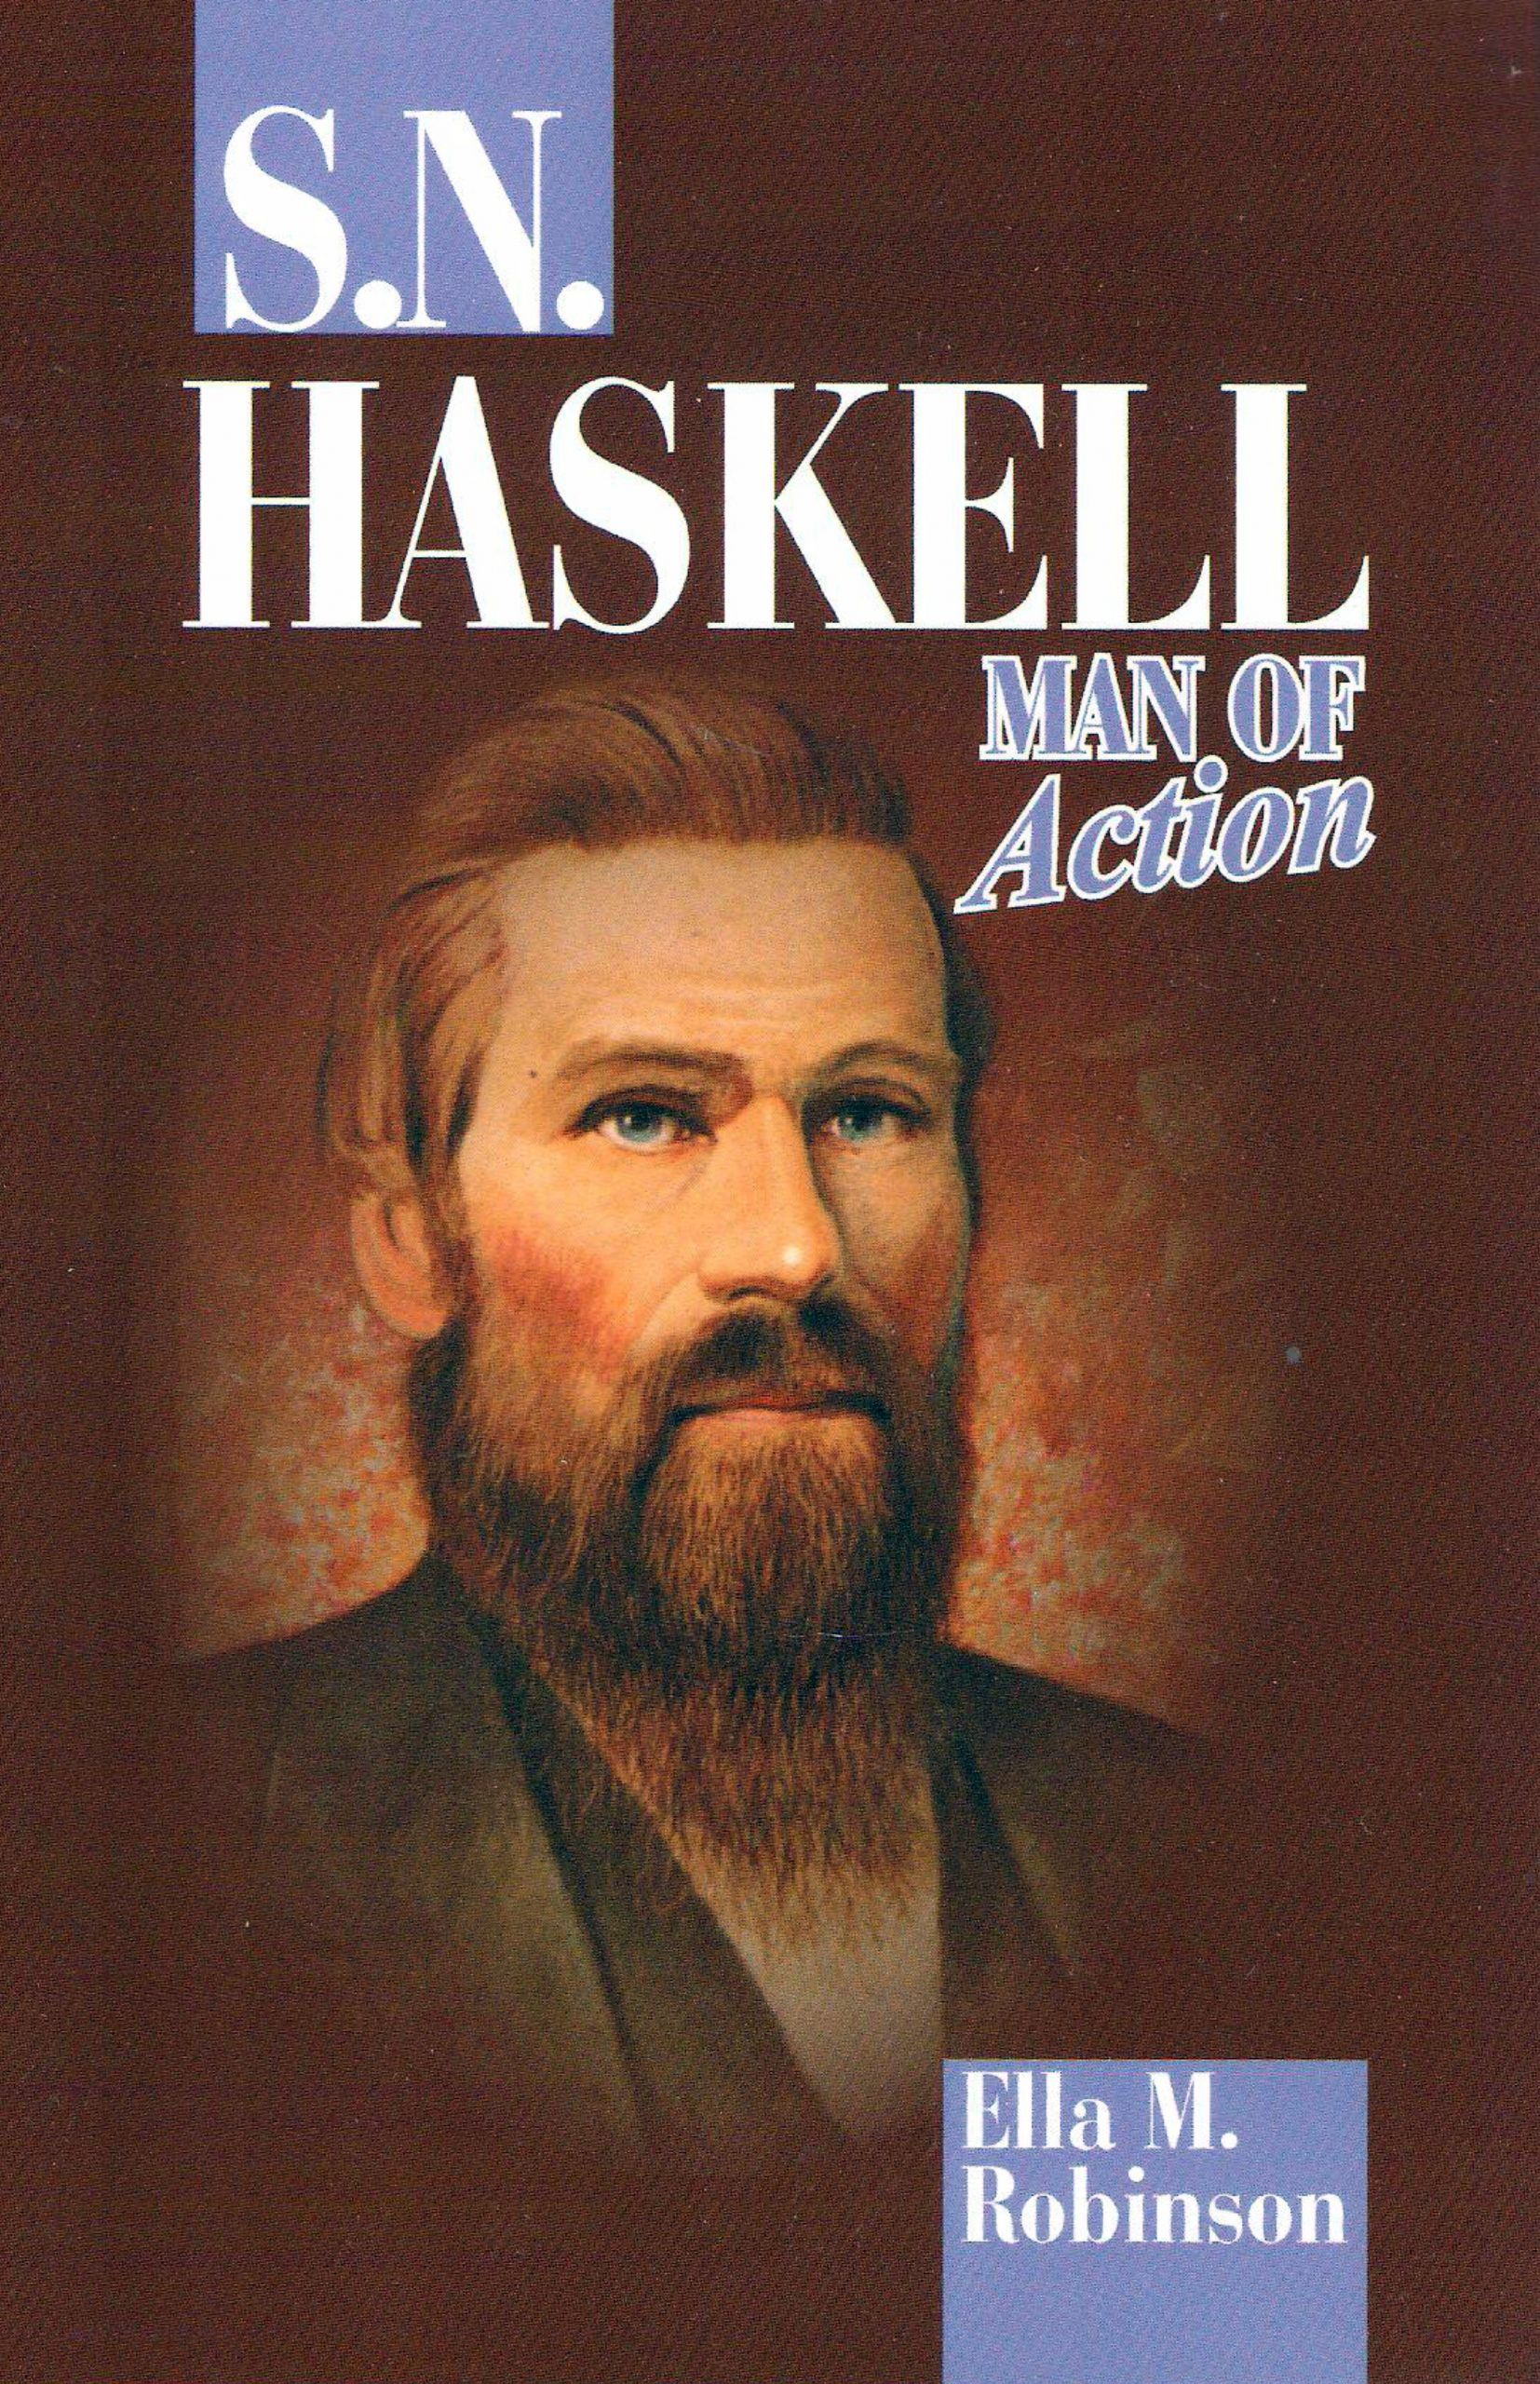 S. N. Haskell, Man of Action